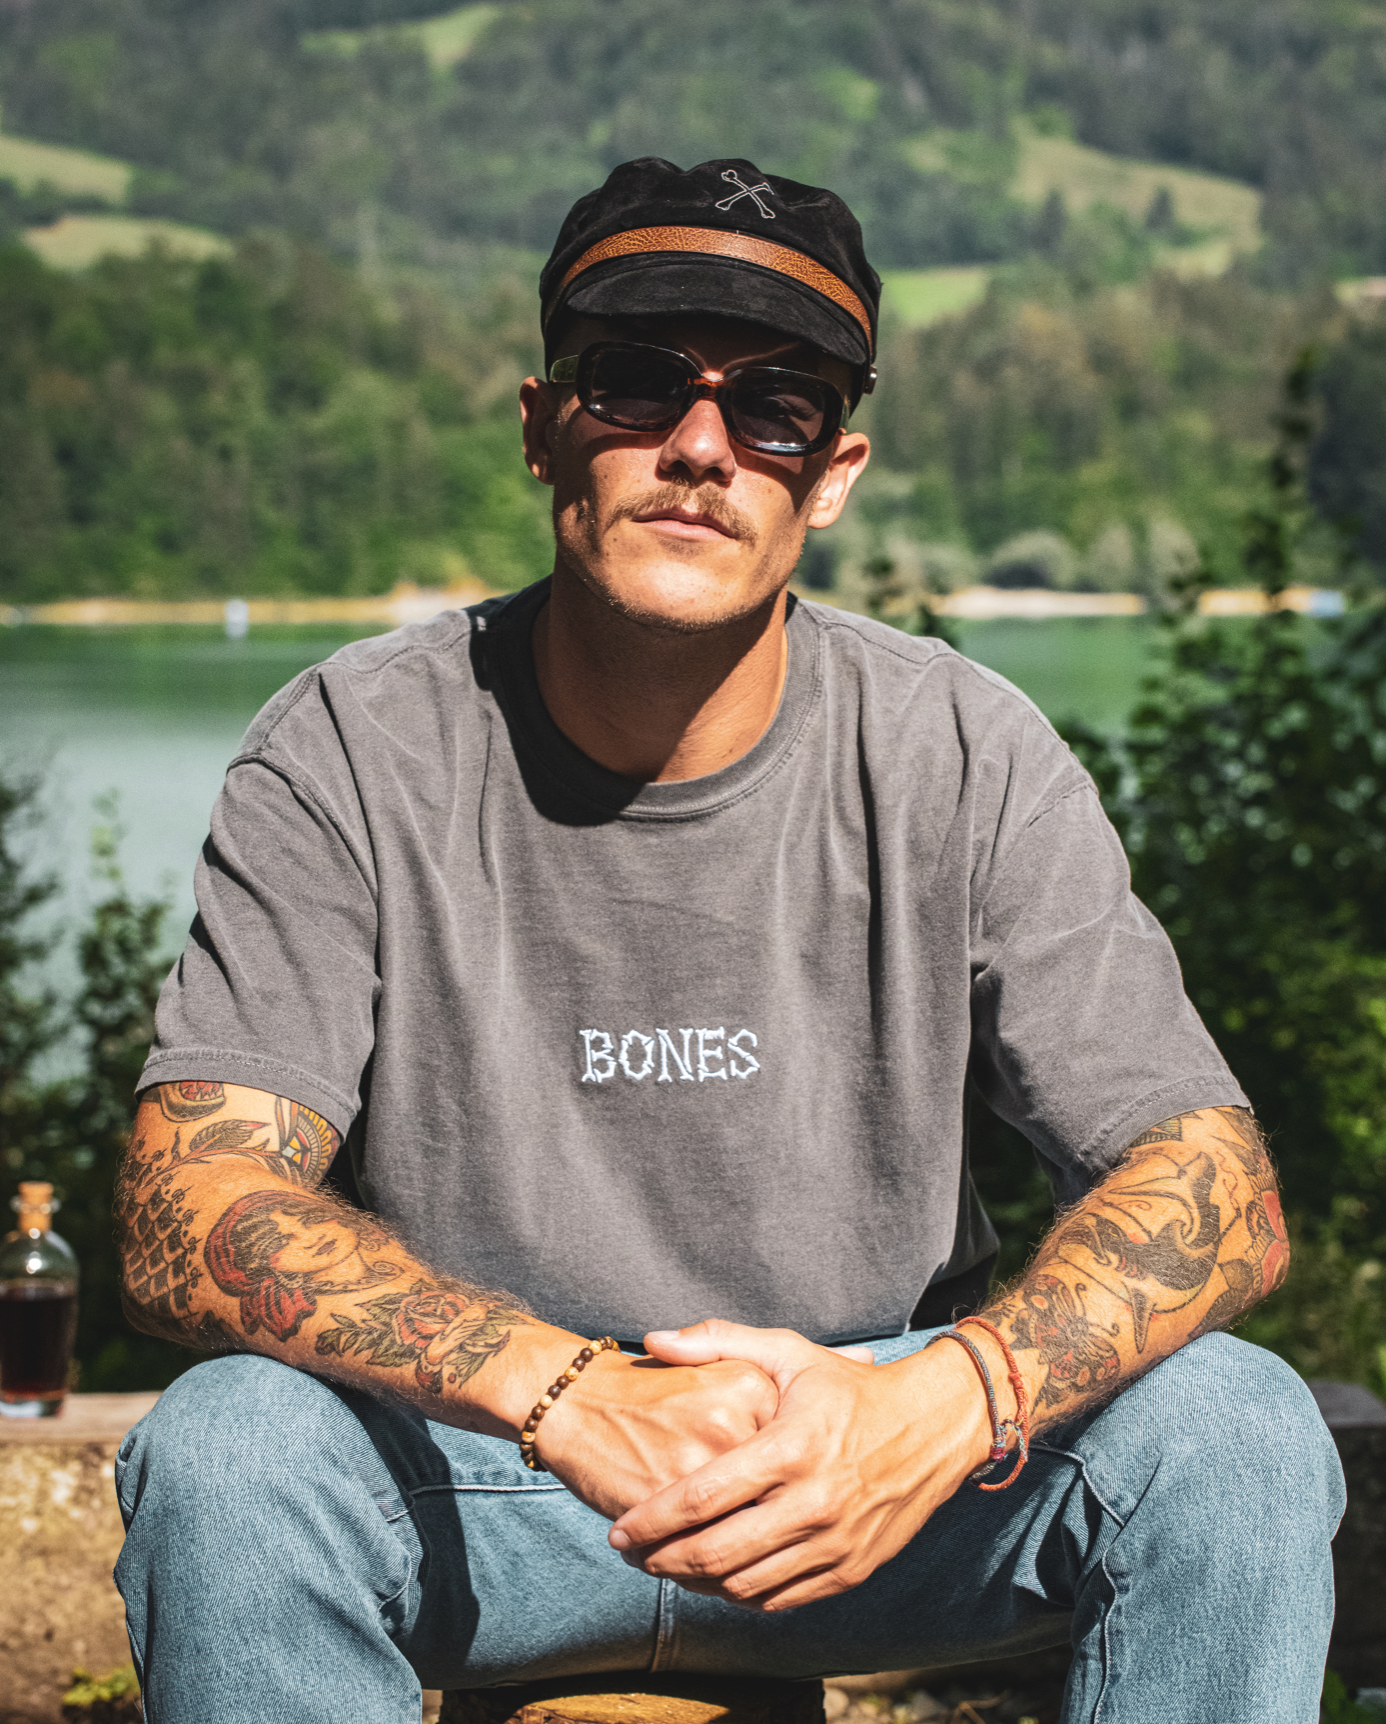 Bones Club Tee - Washed Out Black